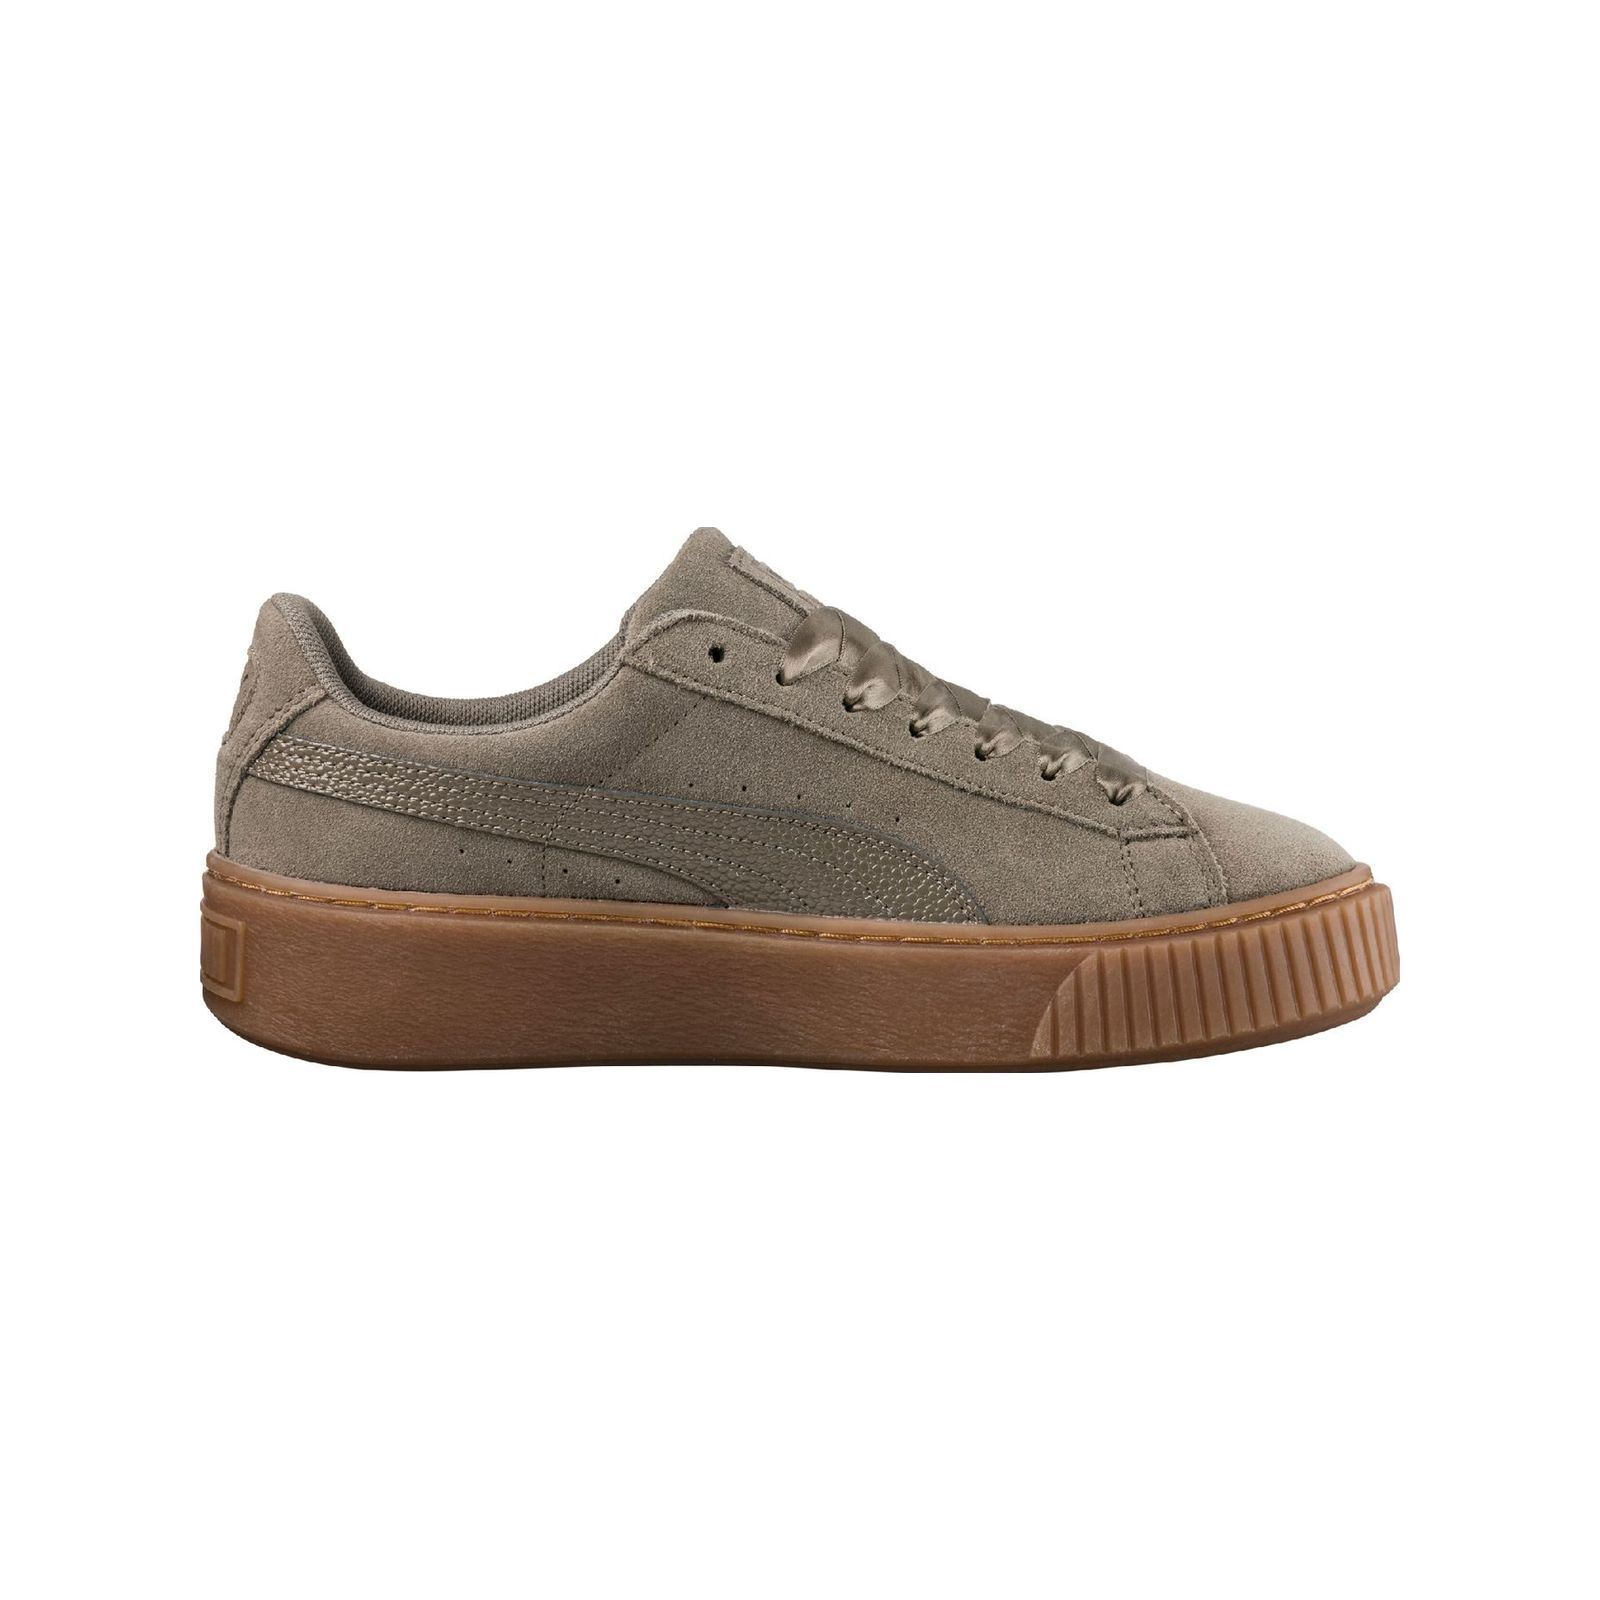 Puma Baskets en cuir - gris  Baskets